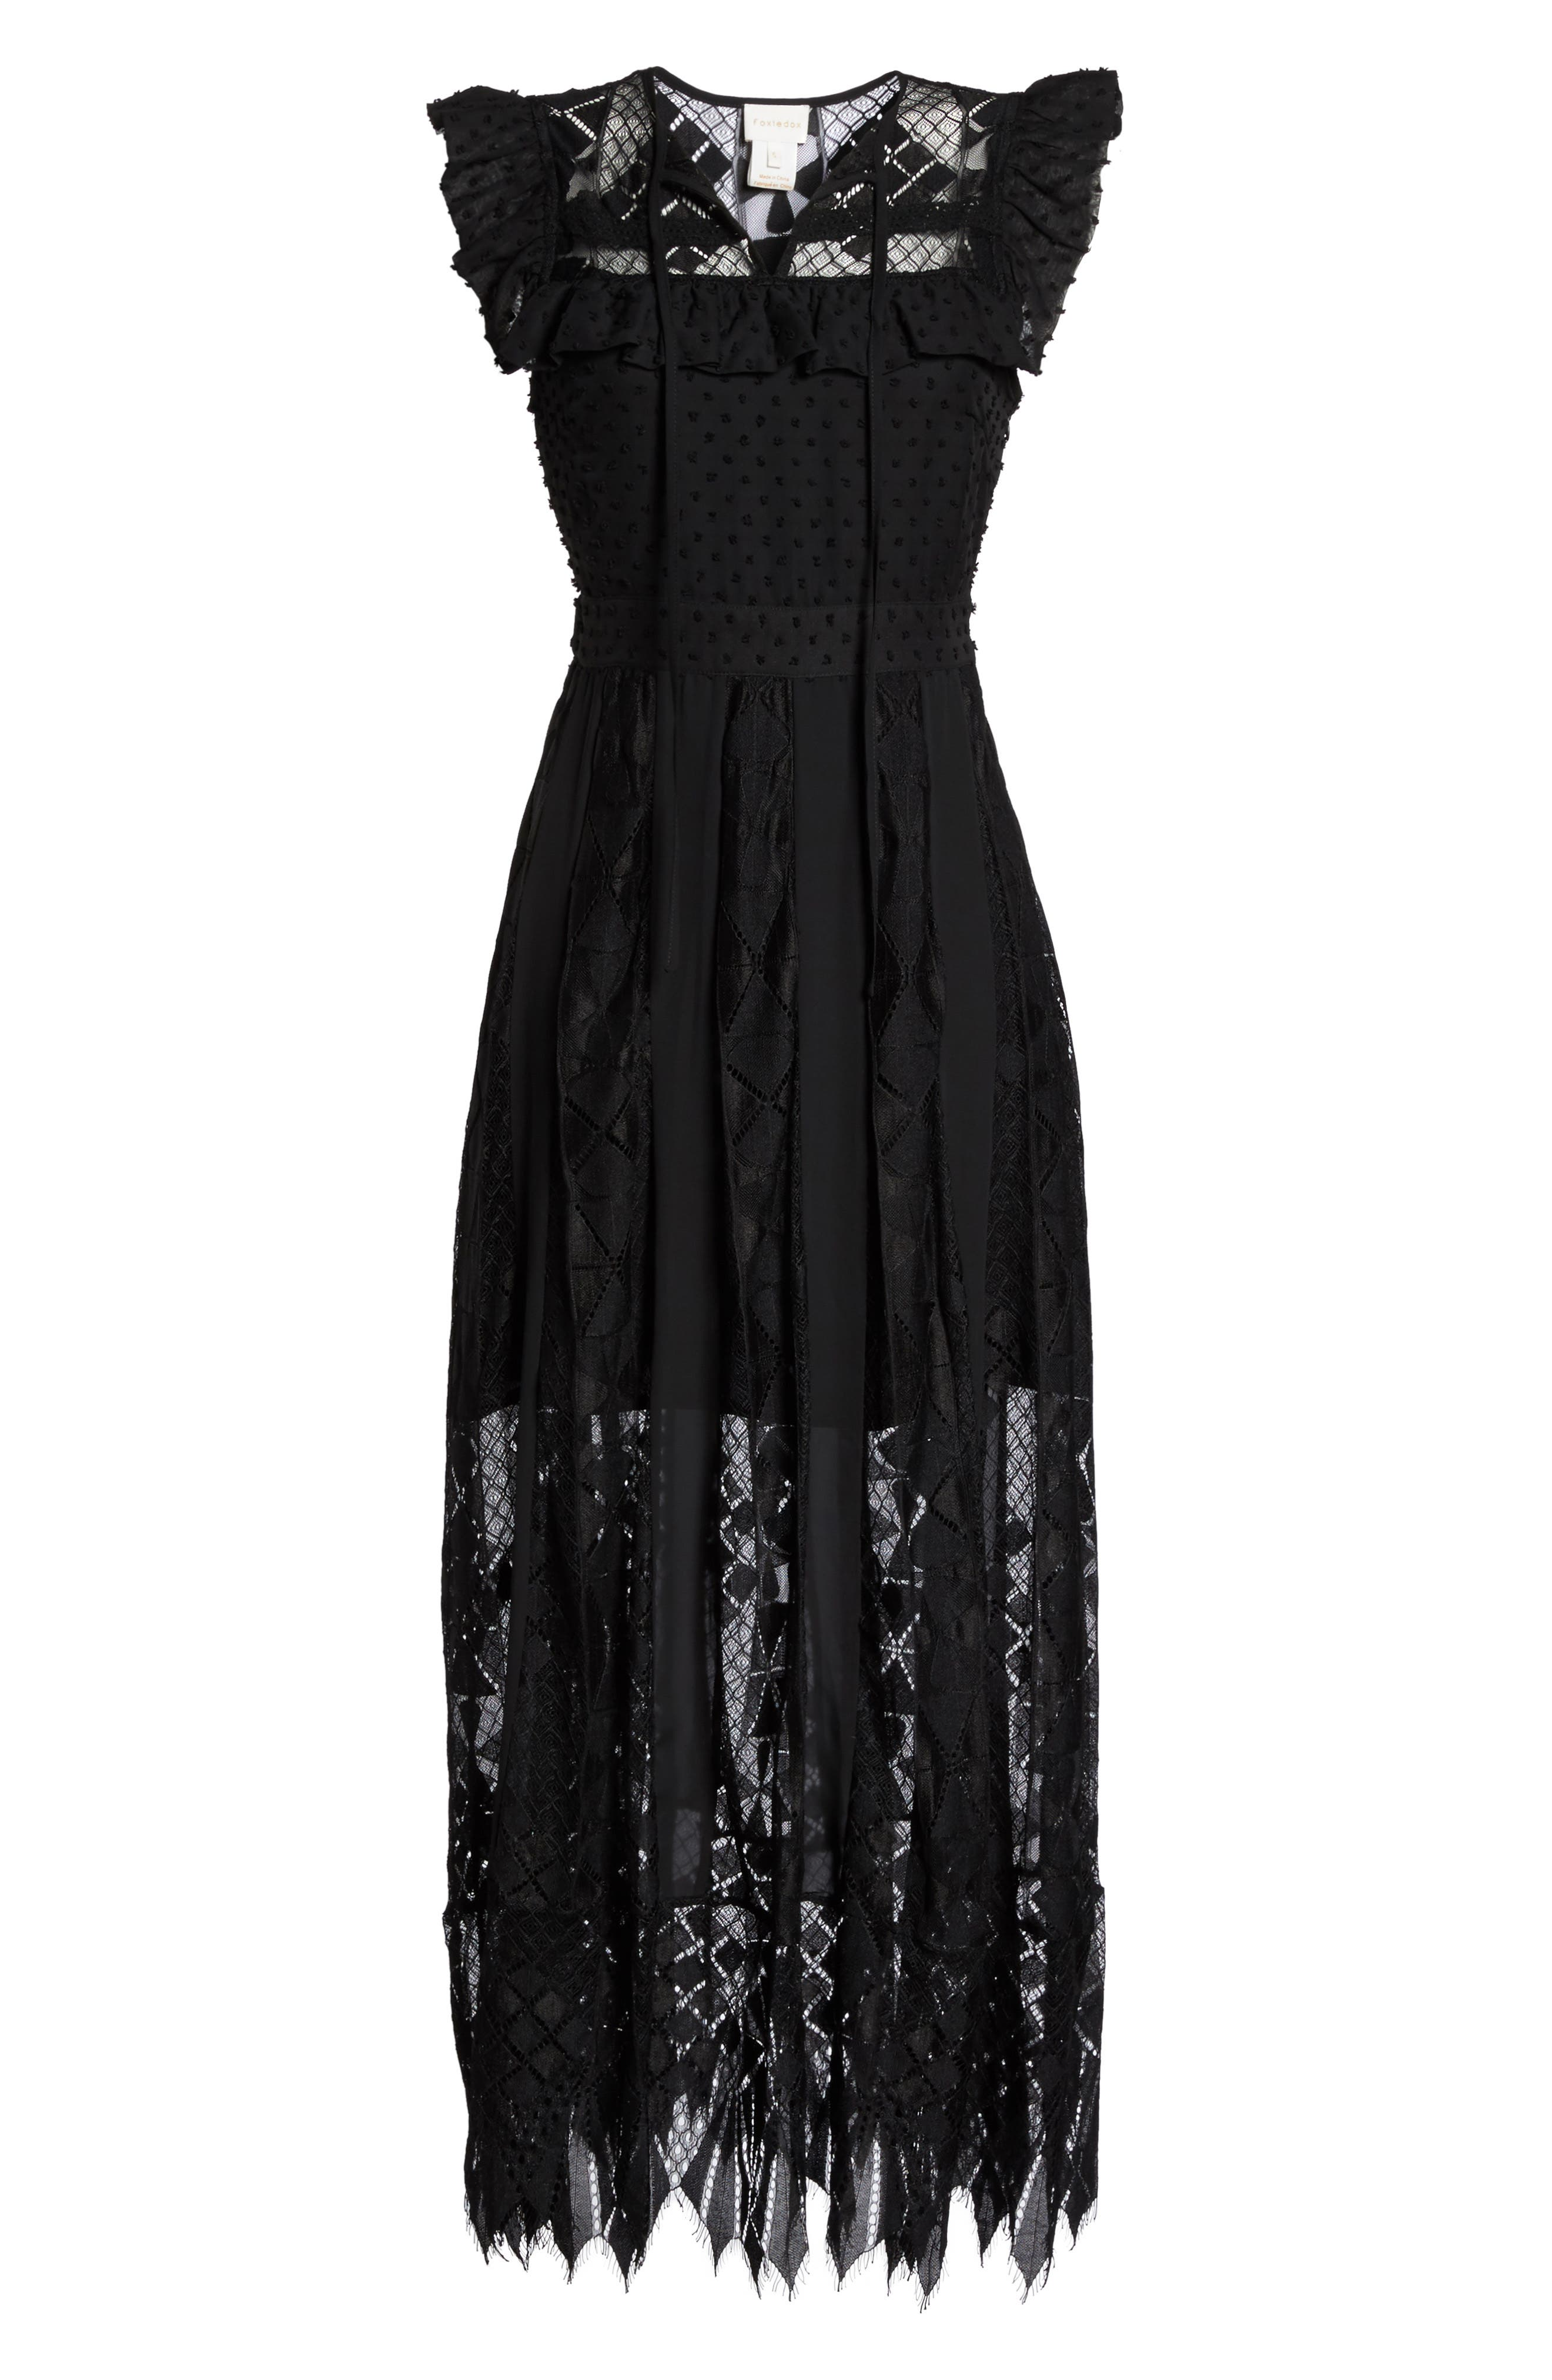 Forence Lace & Swiss Dot Dress,                             Alternate thumbnail 6, color,                             Black